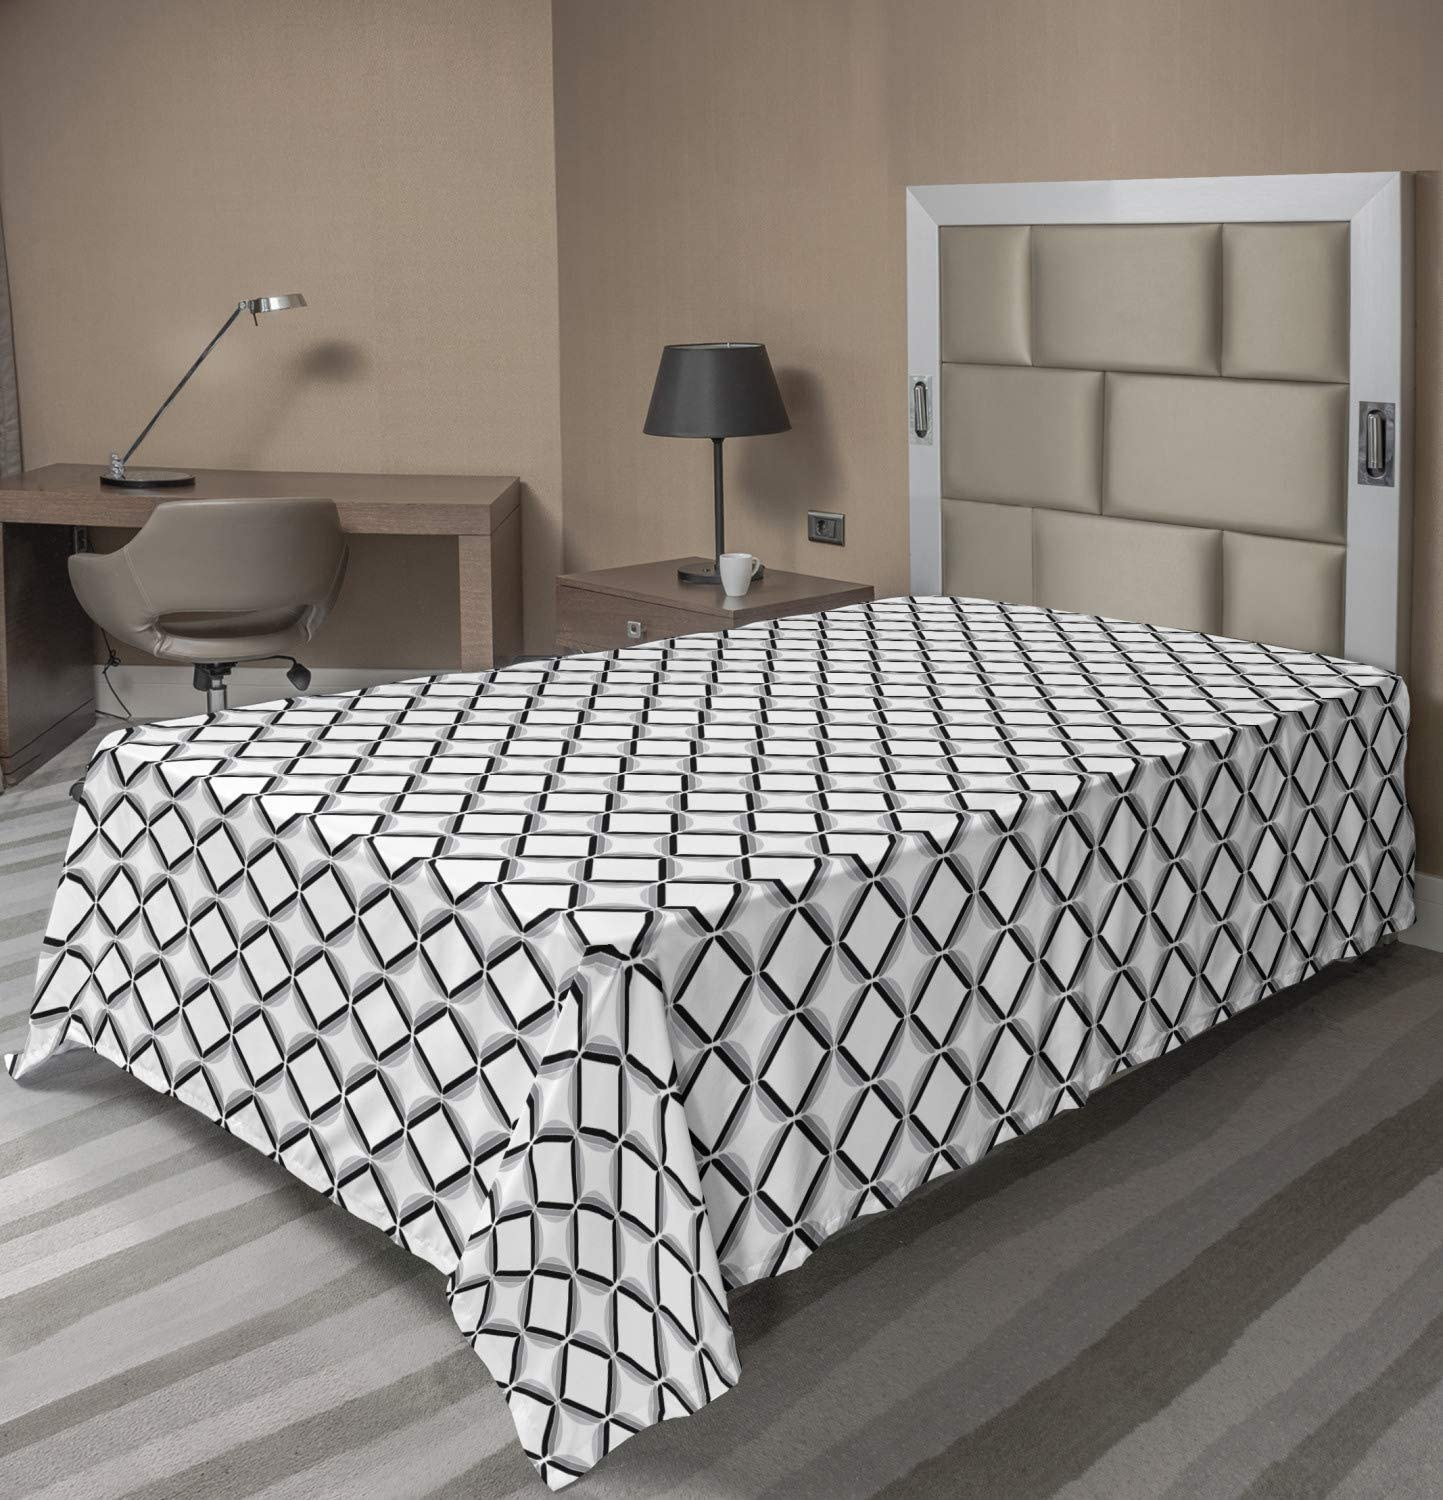 Ambesonne Geometric Flat Sheet Greyscale Pattern Simple Max 88% OFF Discount is also underway Design